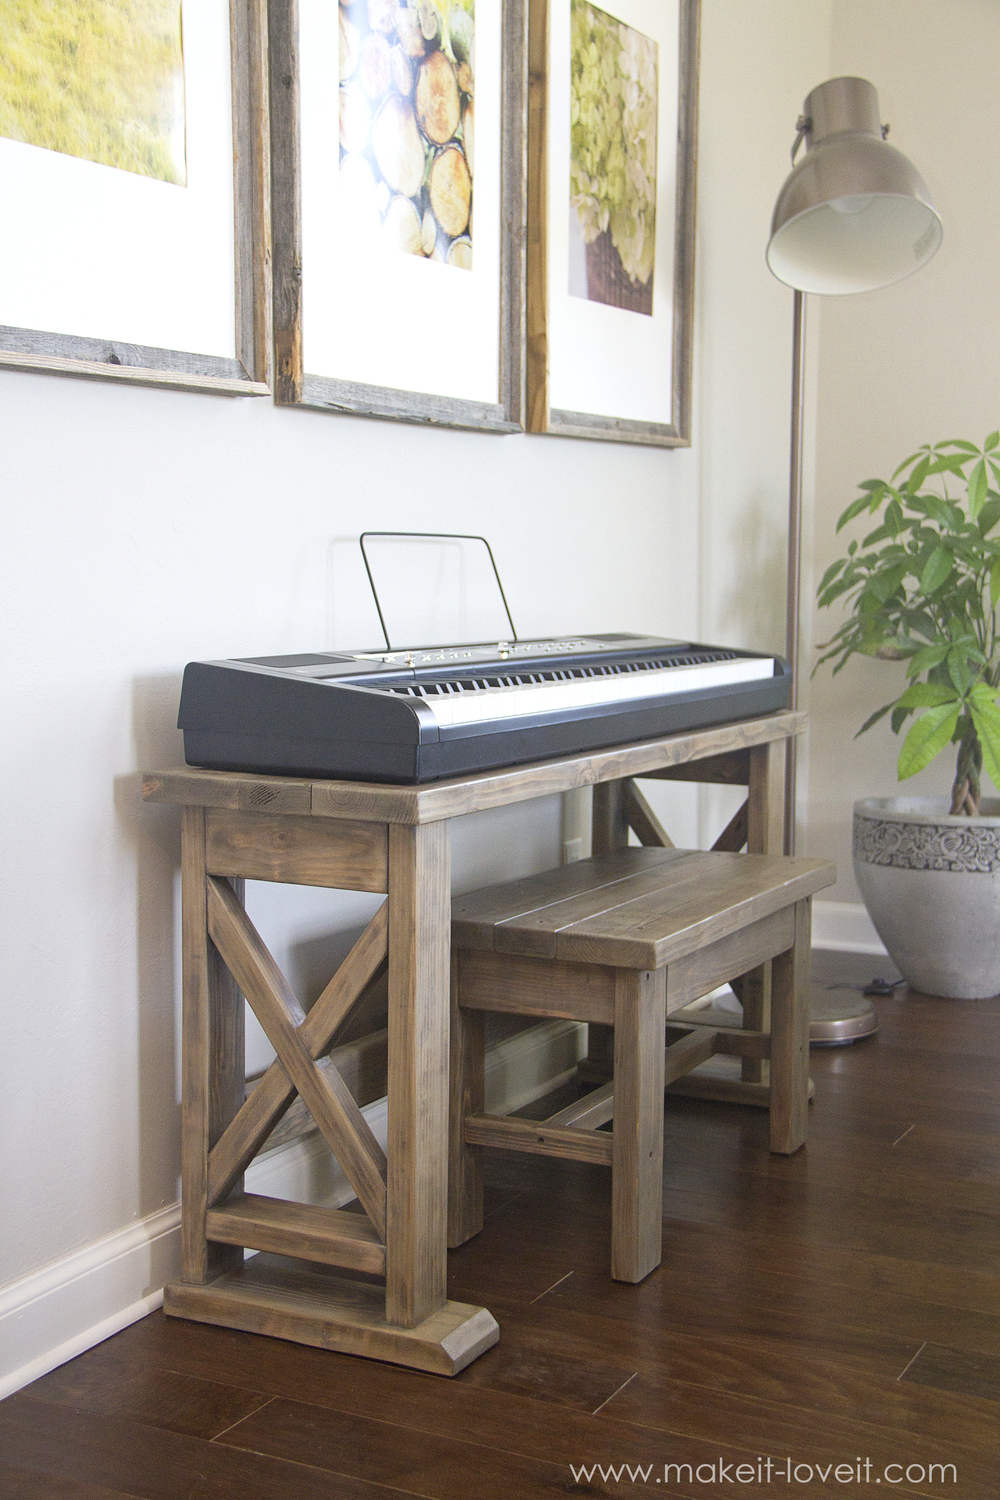 Piano Furniture Diy Digital Piano Stand Plus Bench A 25 Project Make It